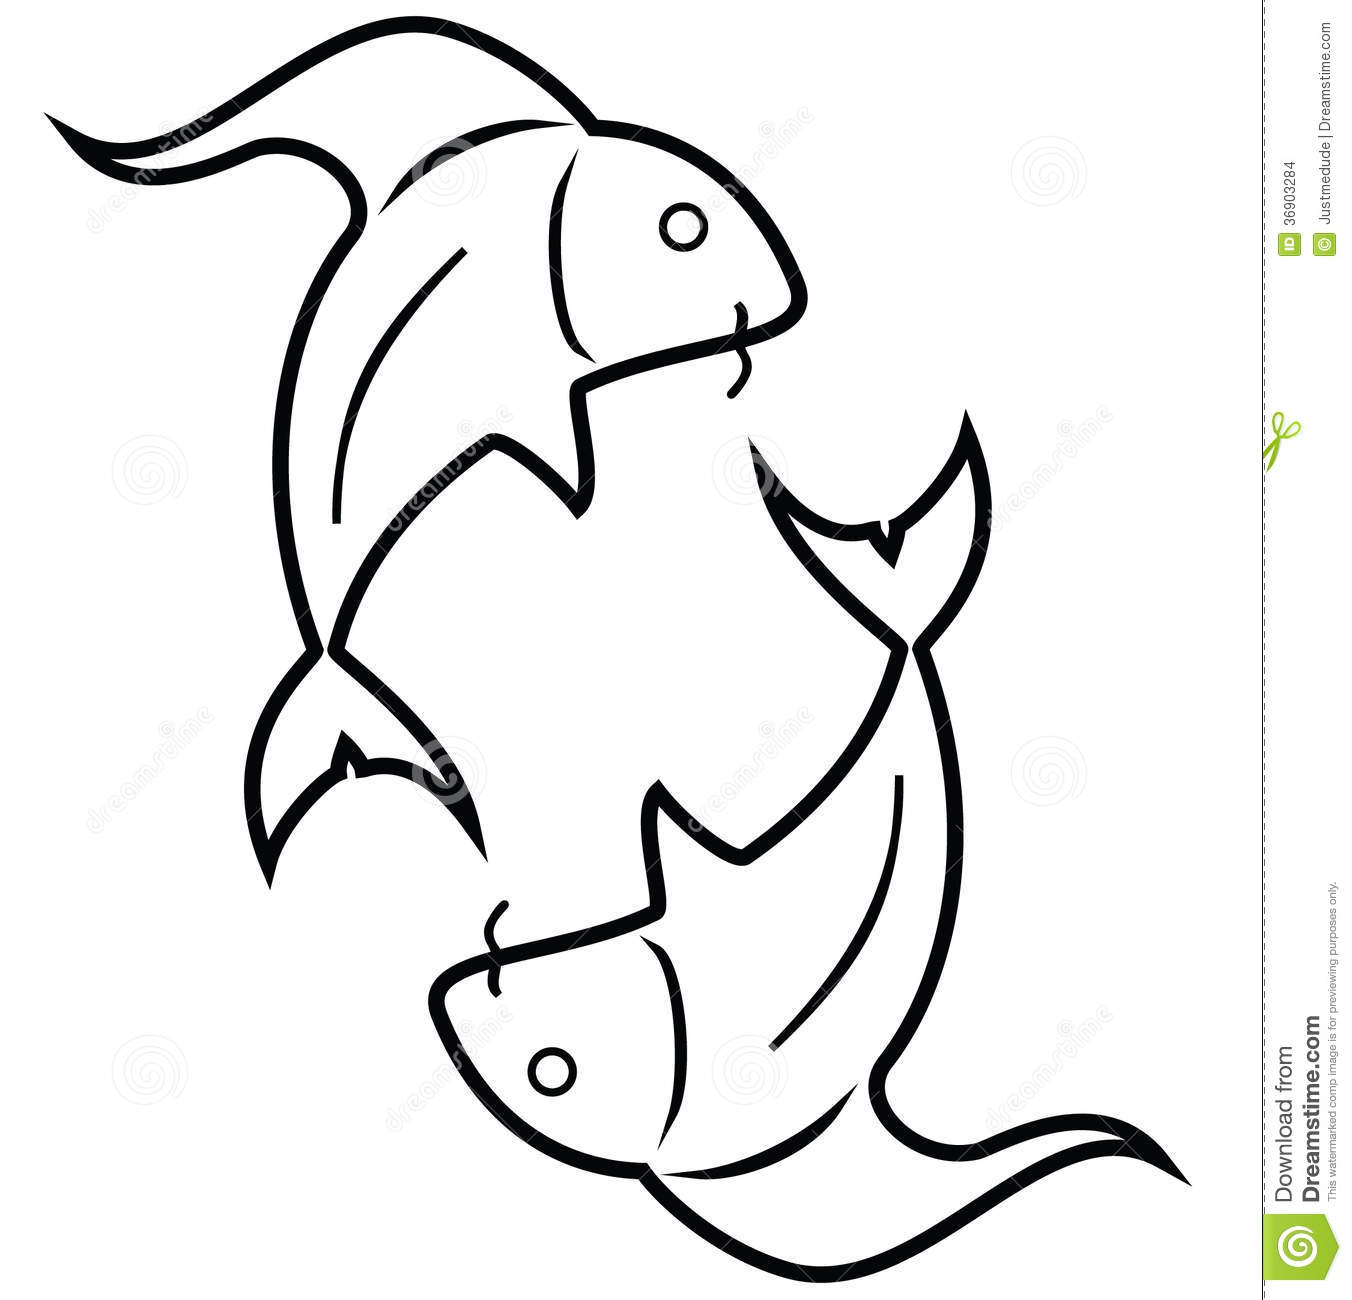 Fish pisces stock vector illustration of simple birthday 36903284 fish pisces biocorpaavc Choice Image